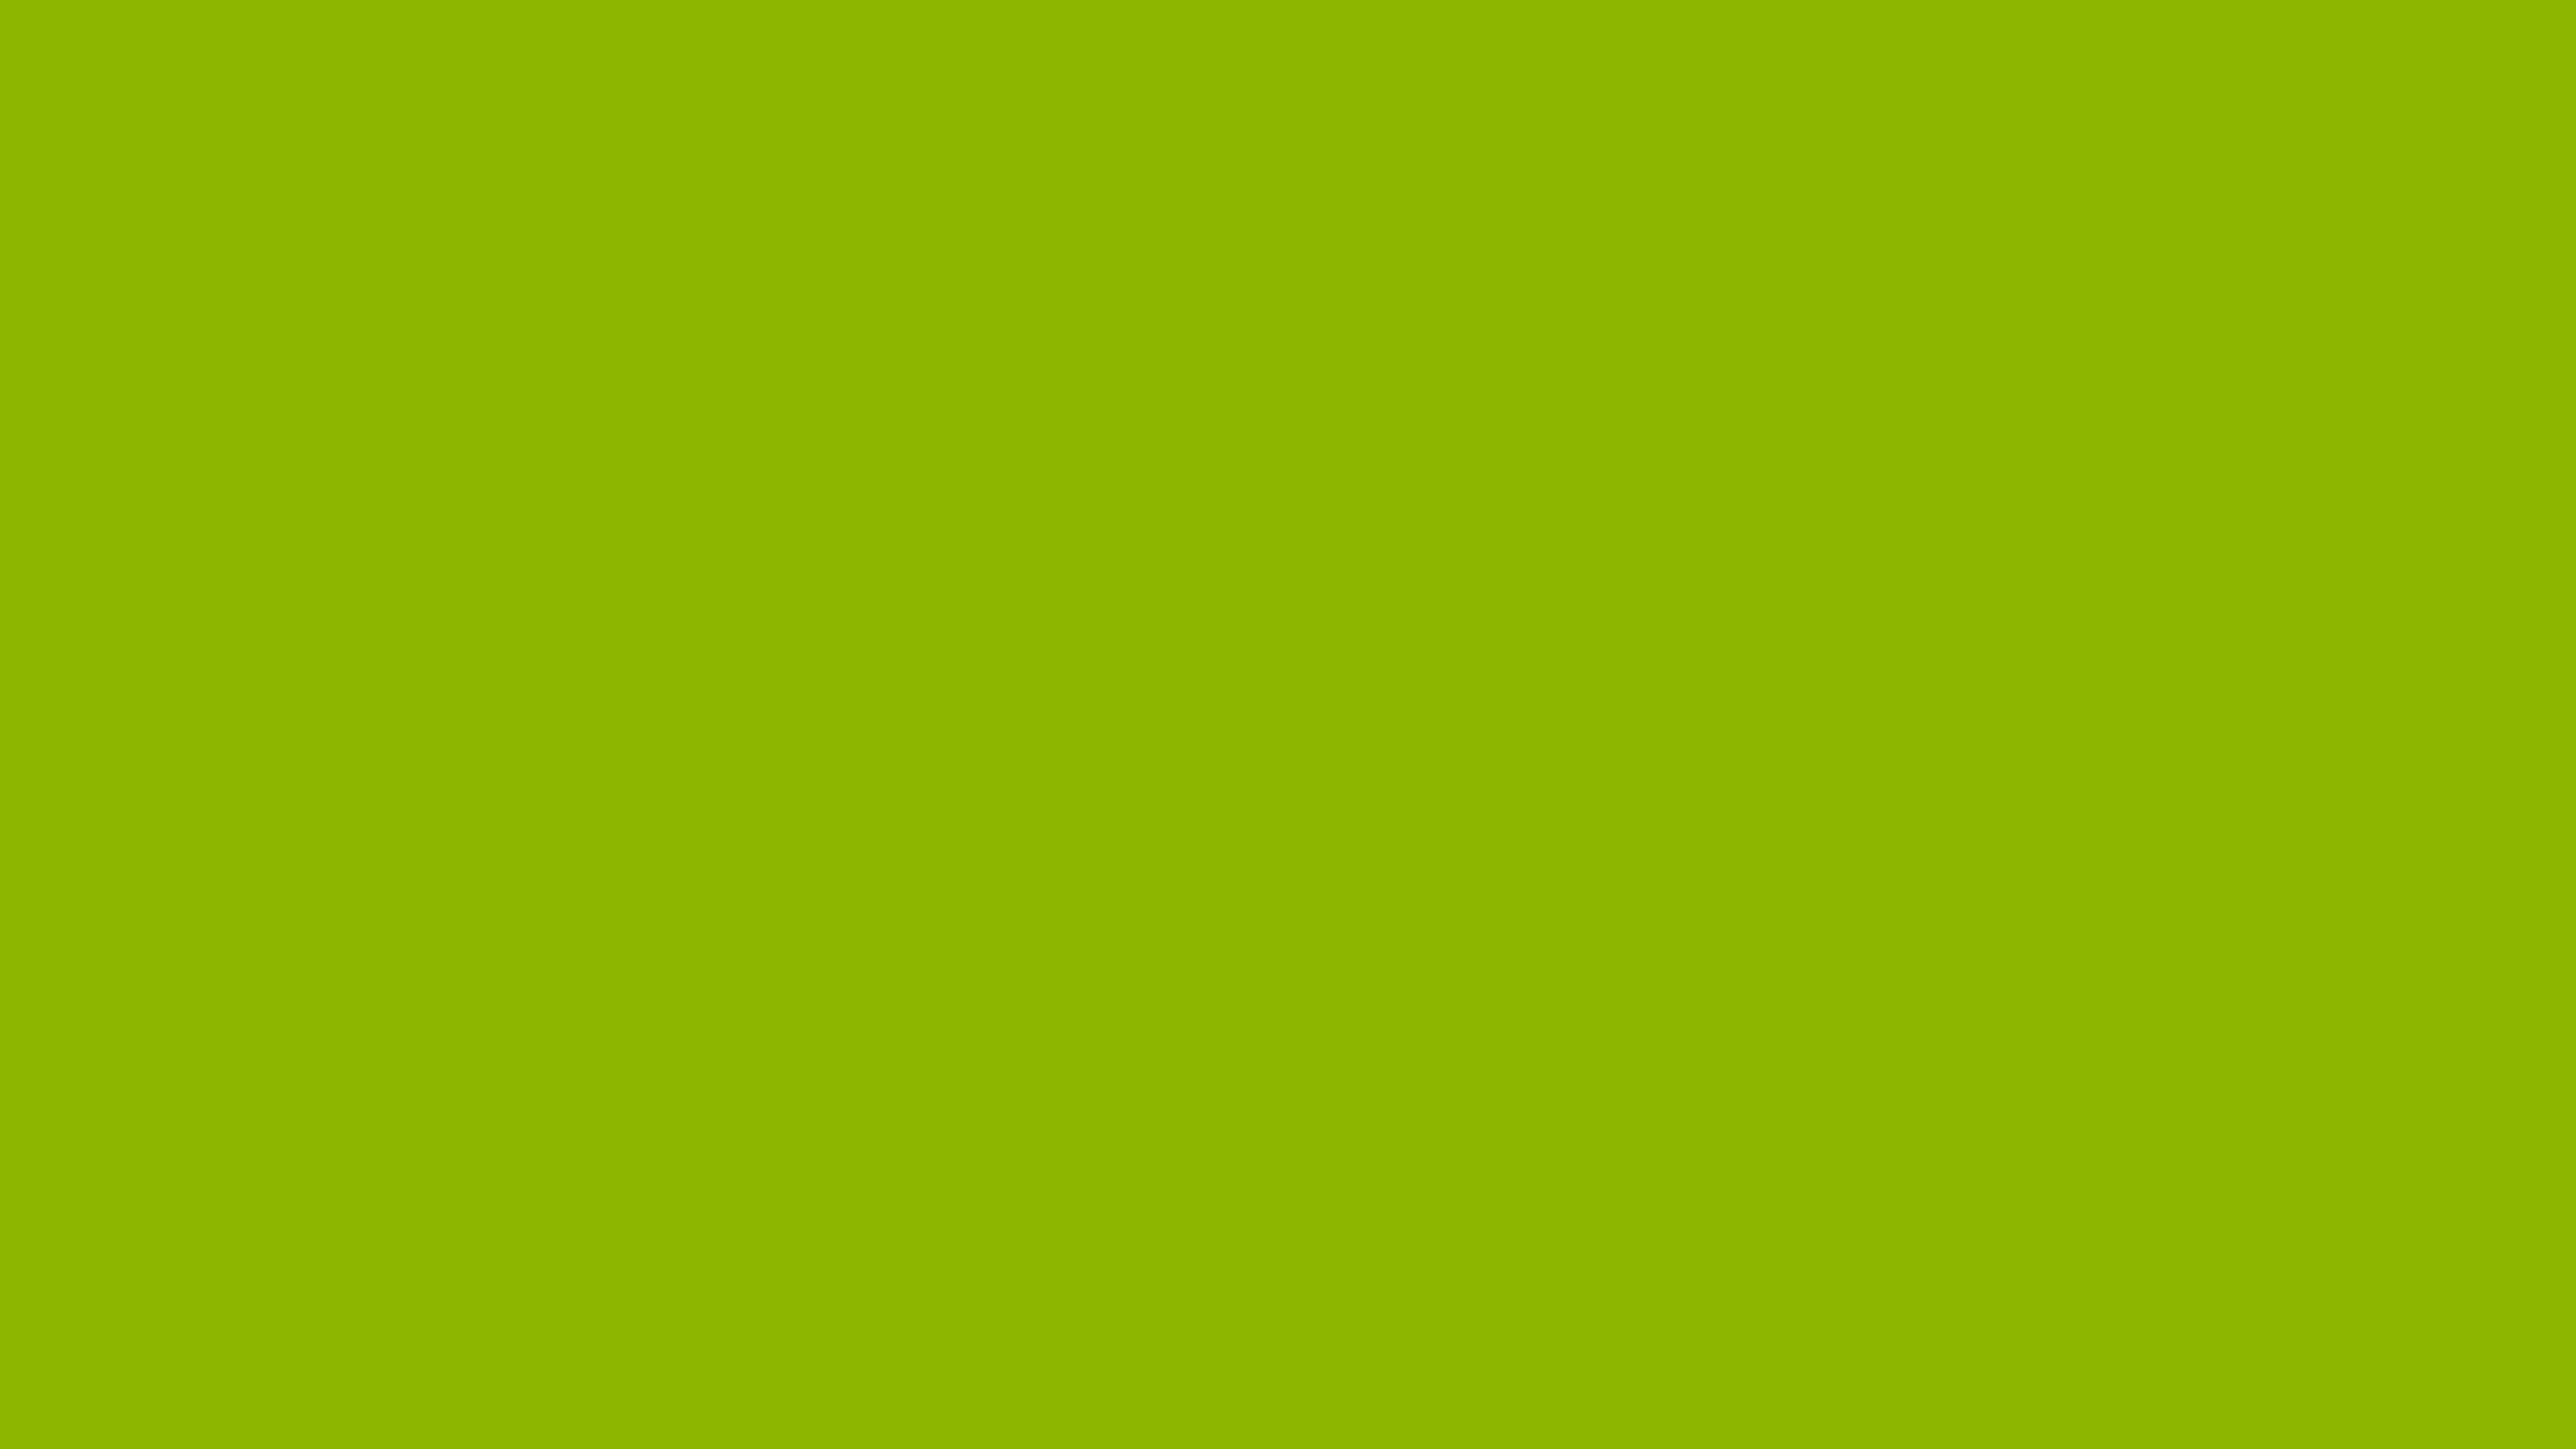 3840x2160 Apple Green Solid Color Background